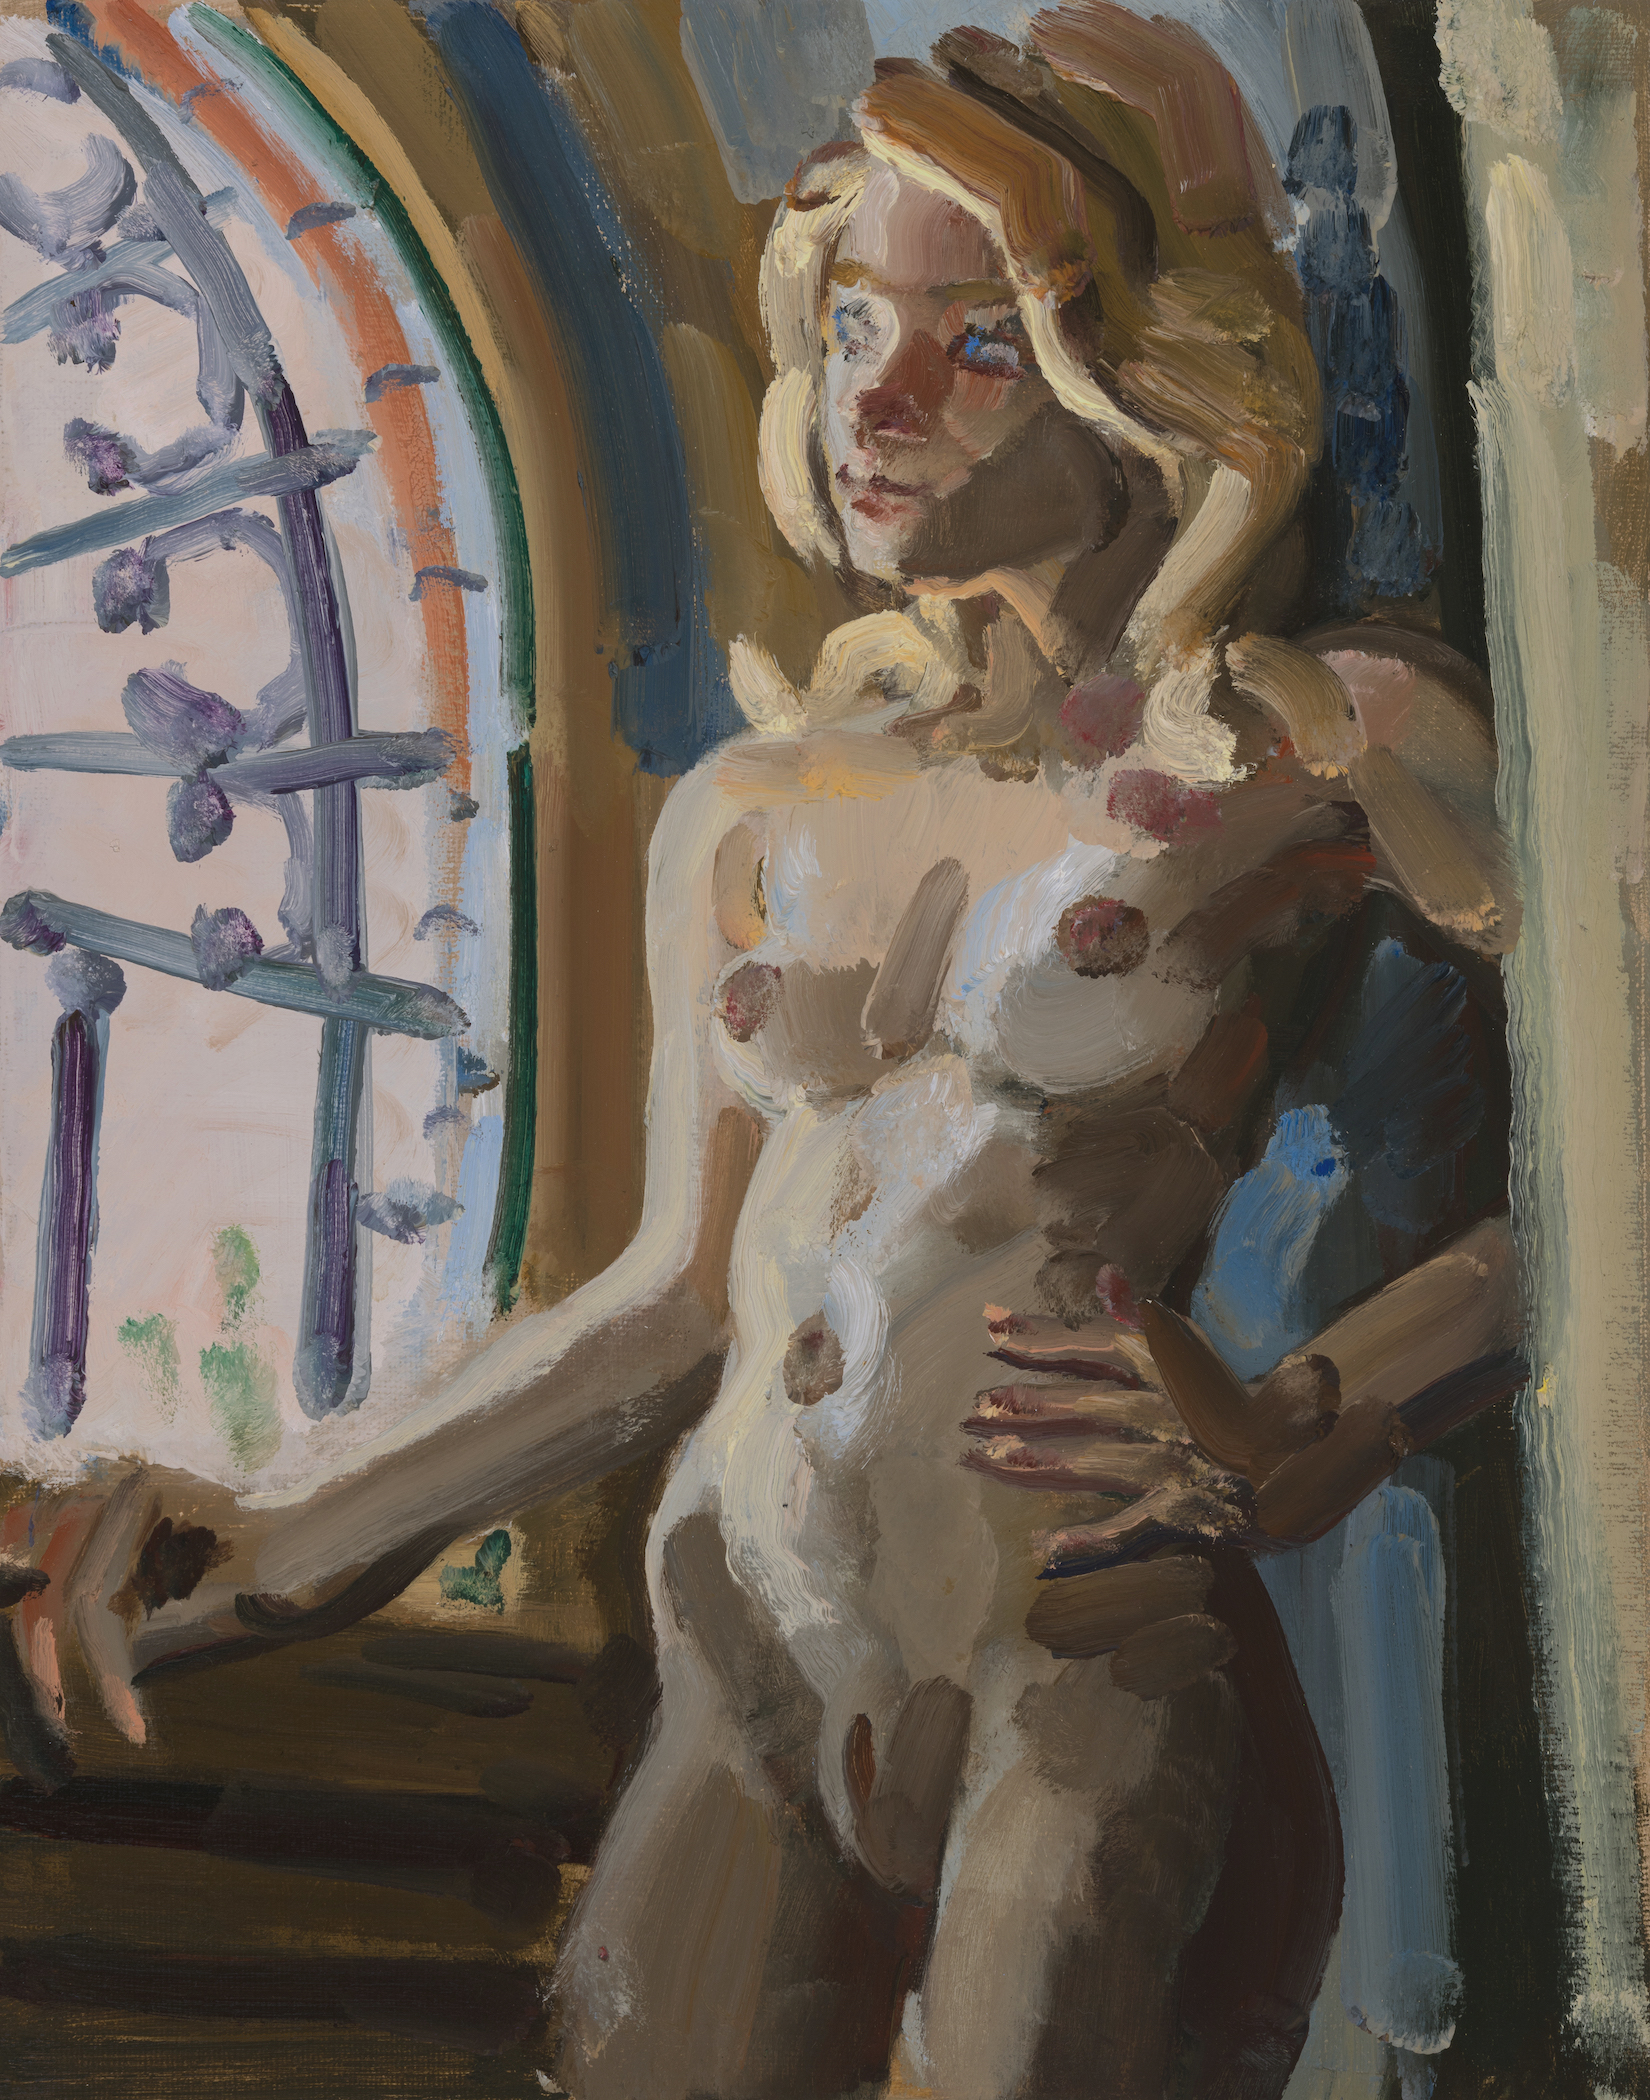 Nude by Window and Grillwork